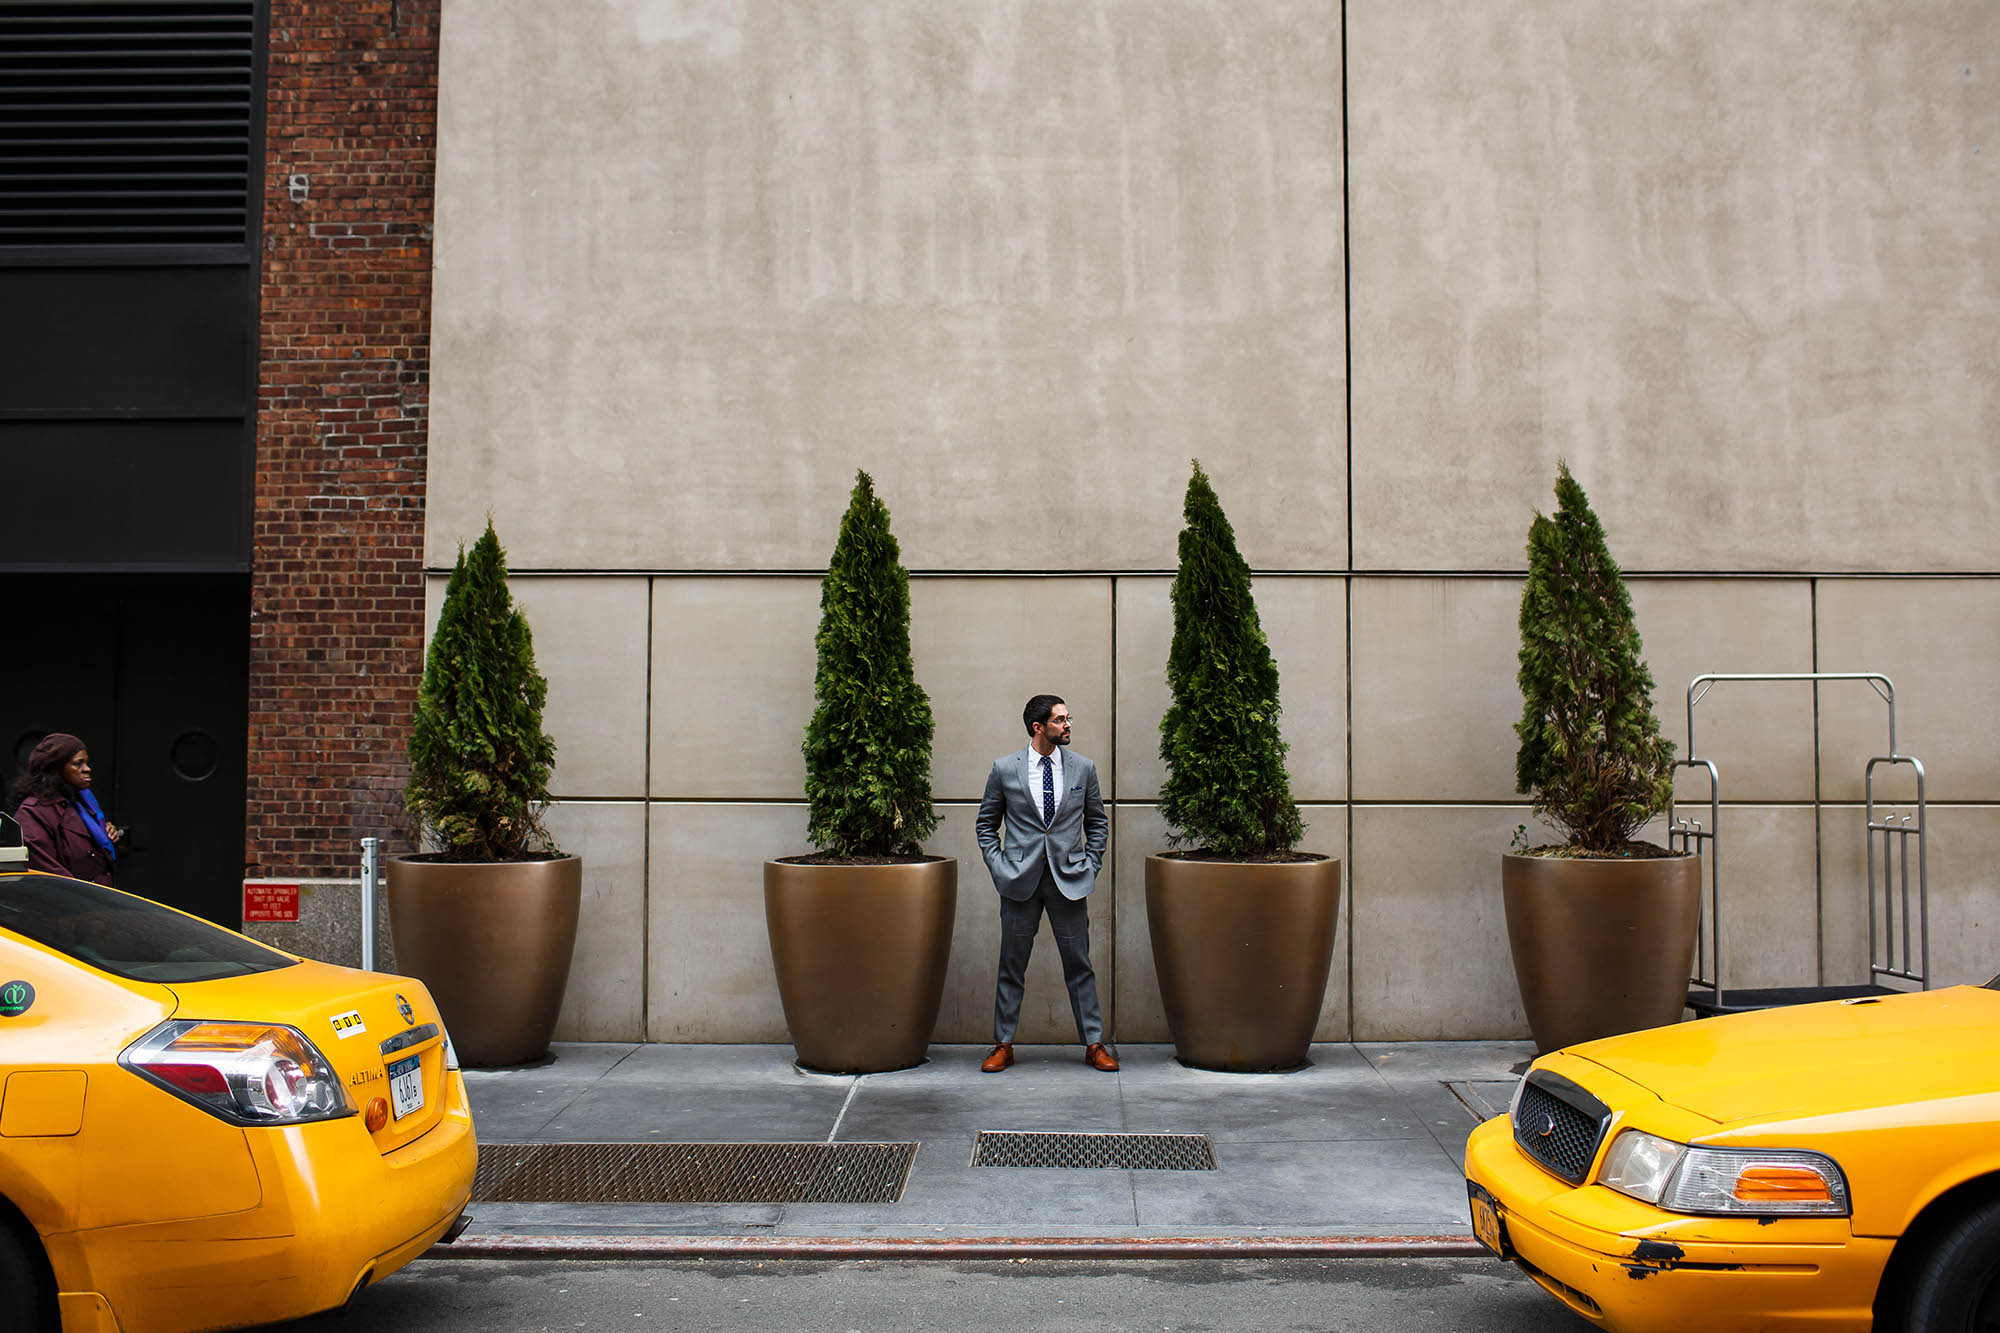 Groom waits for his wedding day to start standing with his hands in his grey suit outside the Hudson Hotel in NYC, New York.